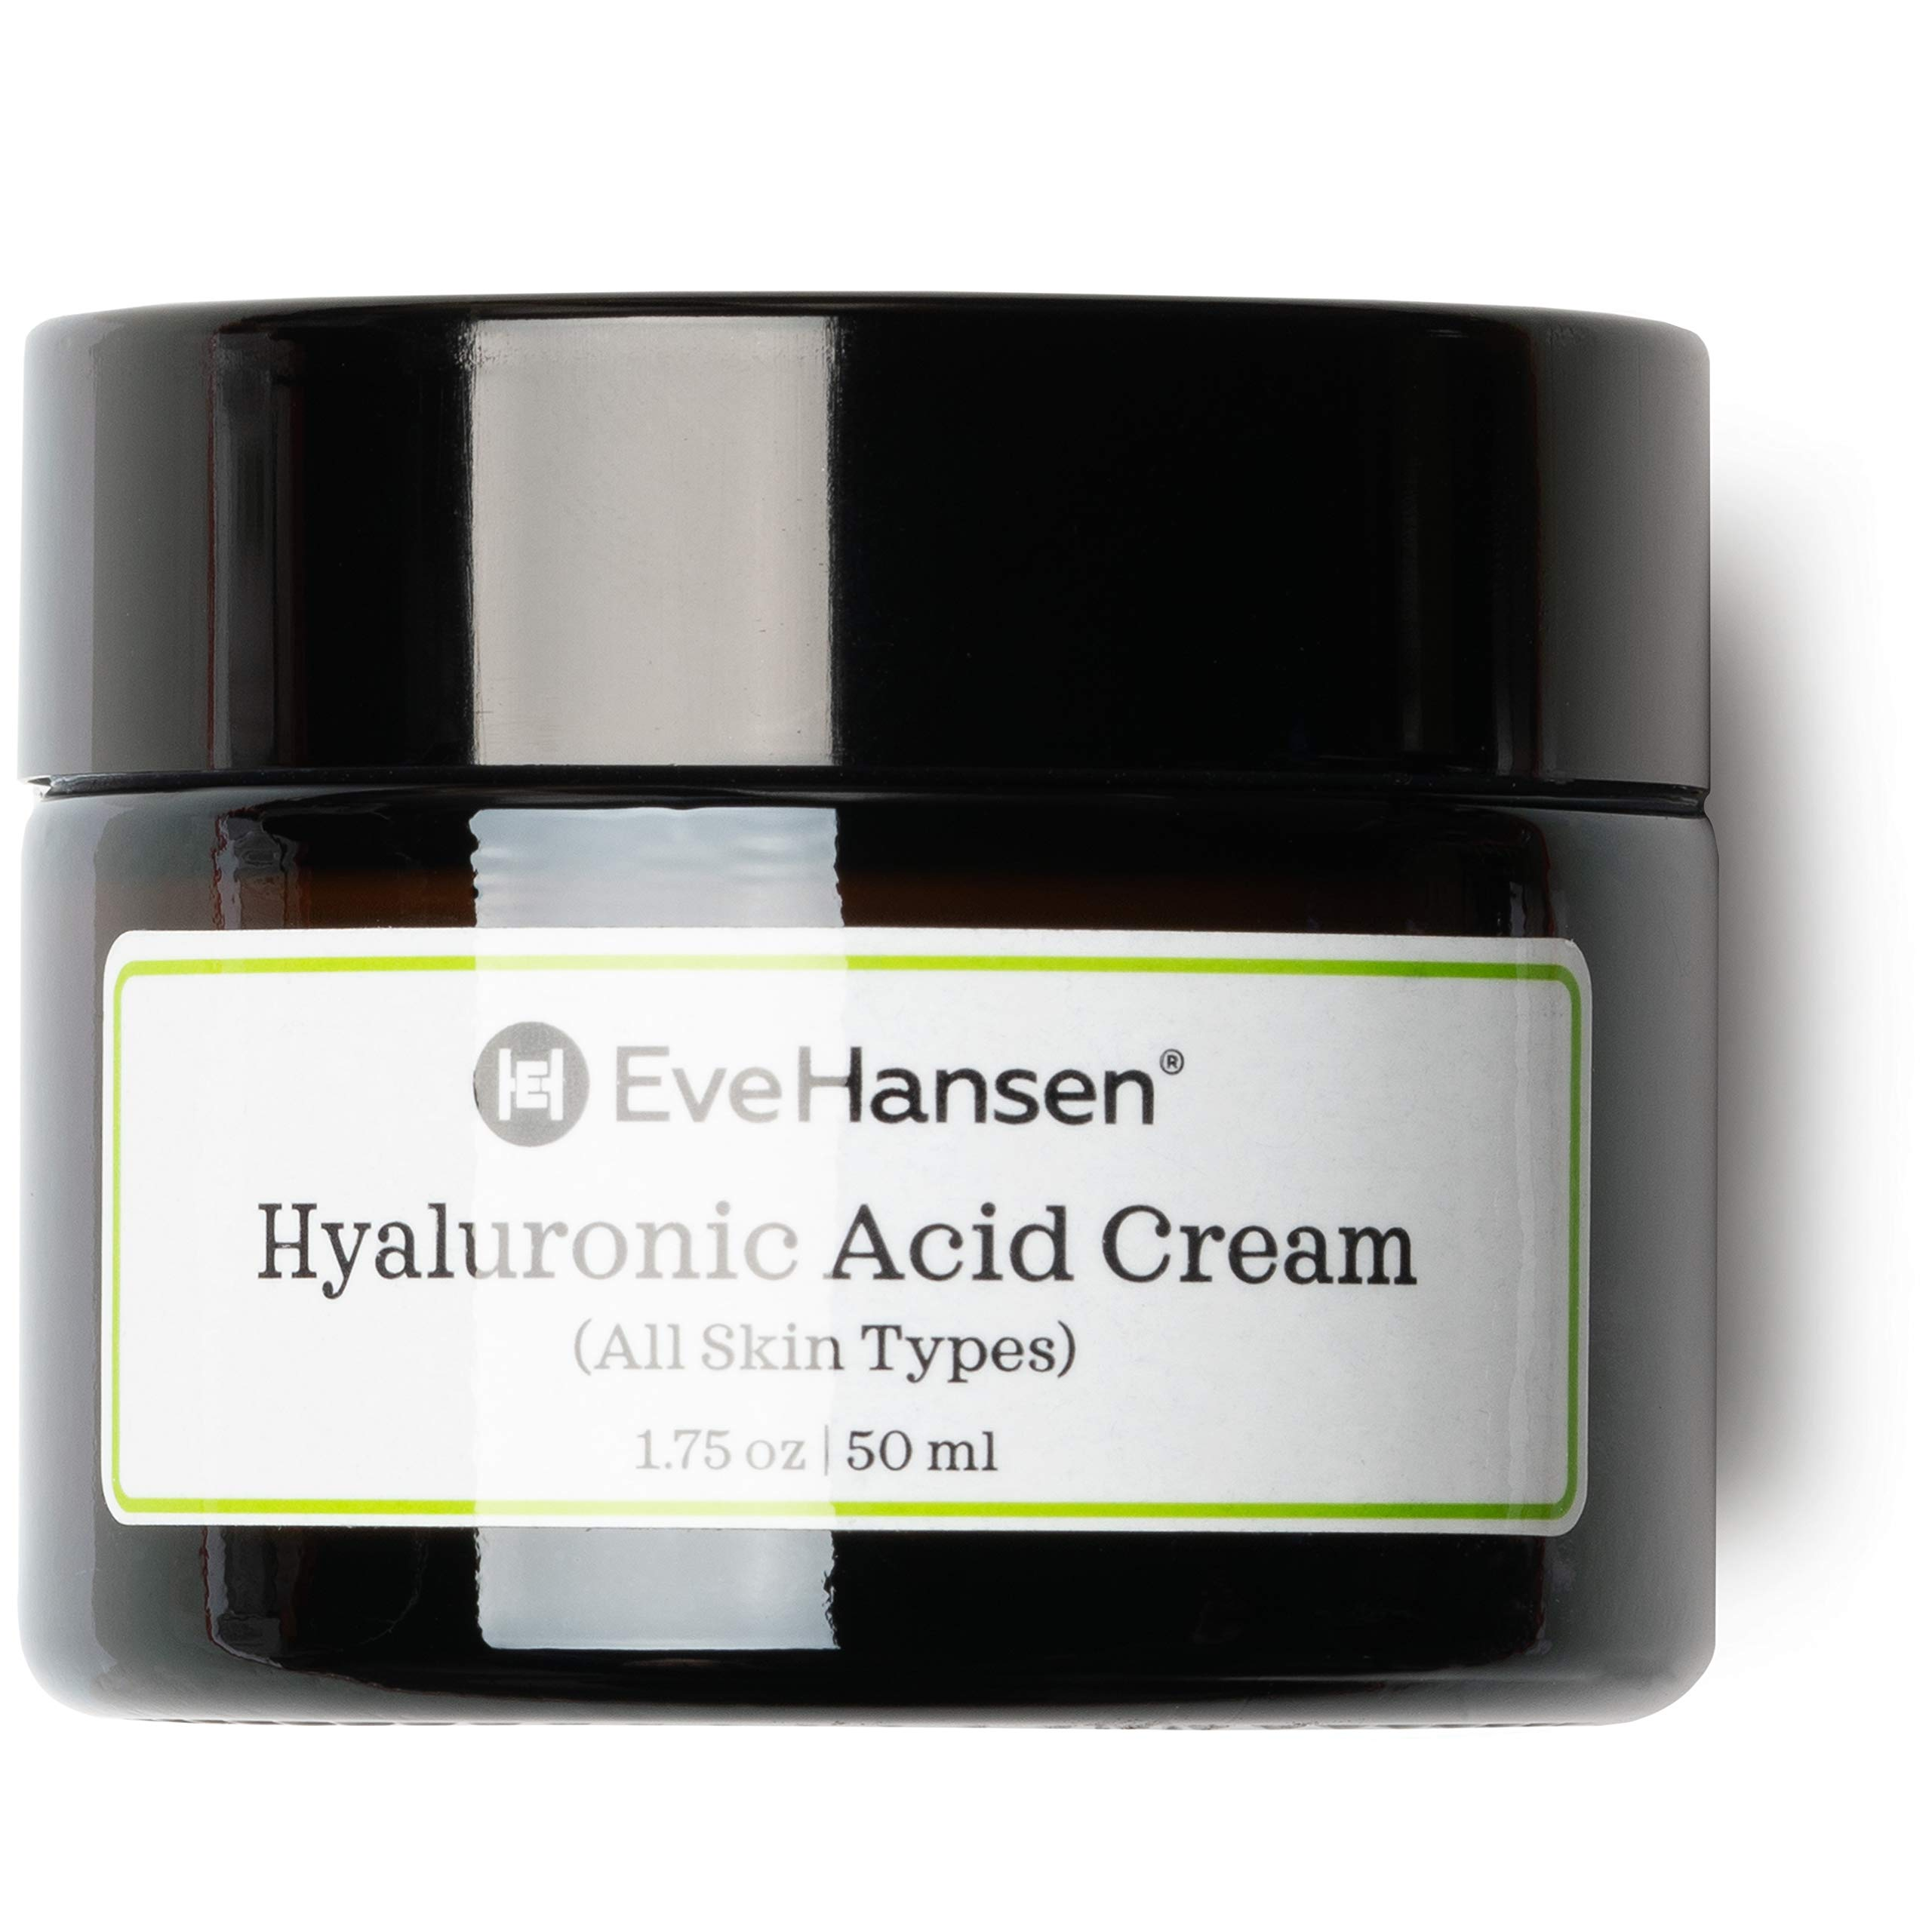 Eve Hansen Hyaluronic Acid Cream for Face | Natural Face Moisturizer, Neck Cream, Anti-Wrinkle Cream | Anti Aging Face Cream for Women, Mens Moisturizer for Face w/Organic Botanical Extracts 1.75oz by Eve Hansen